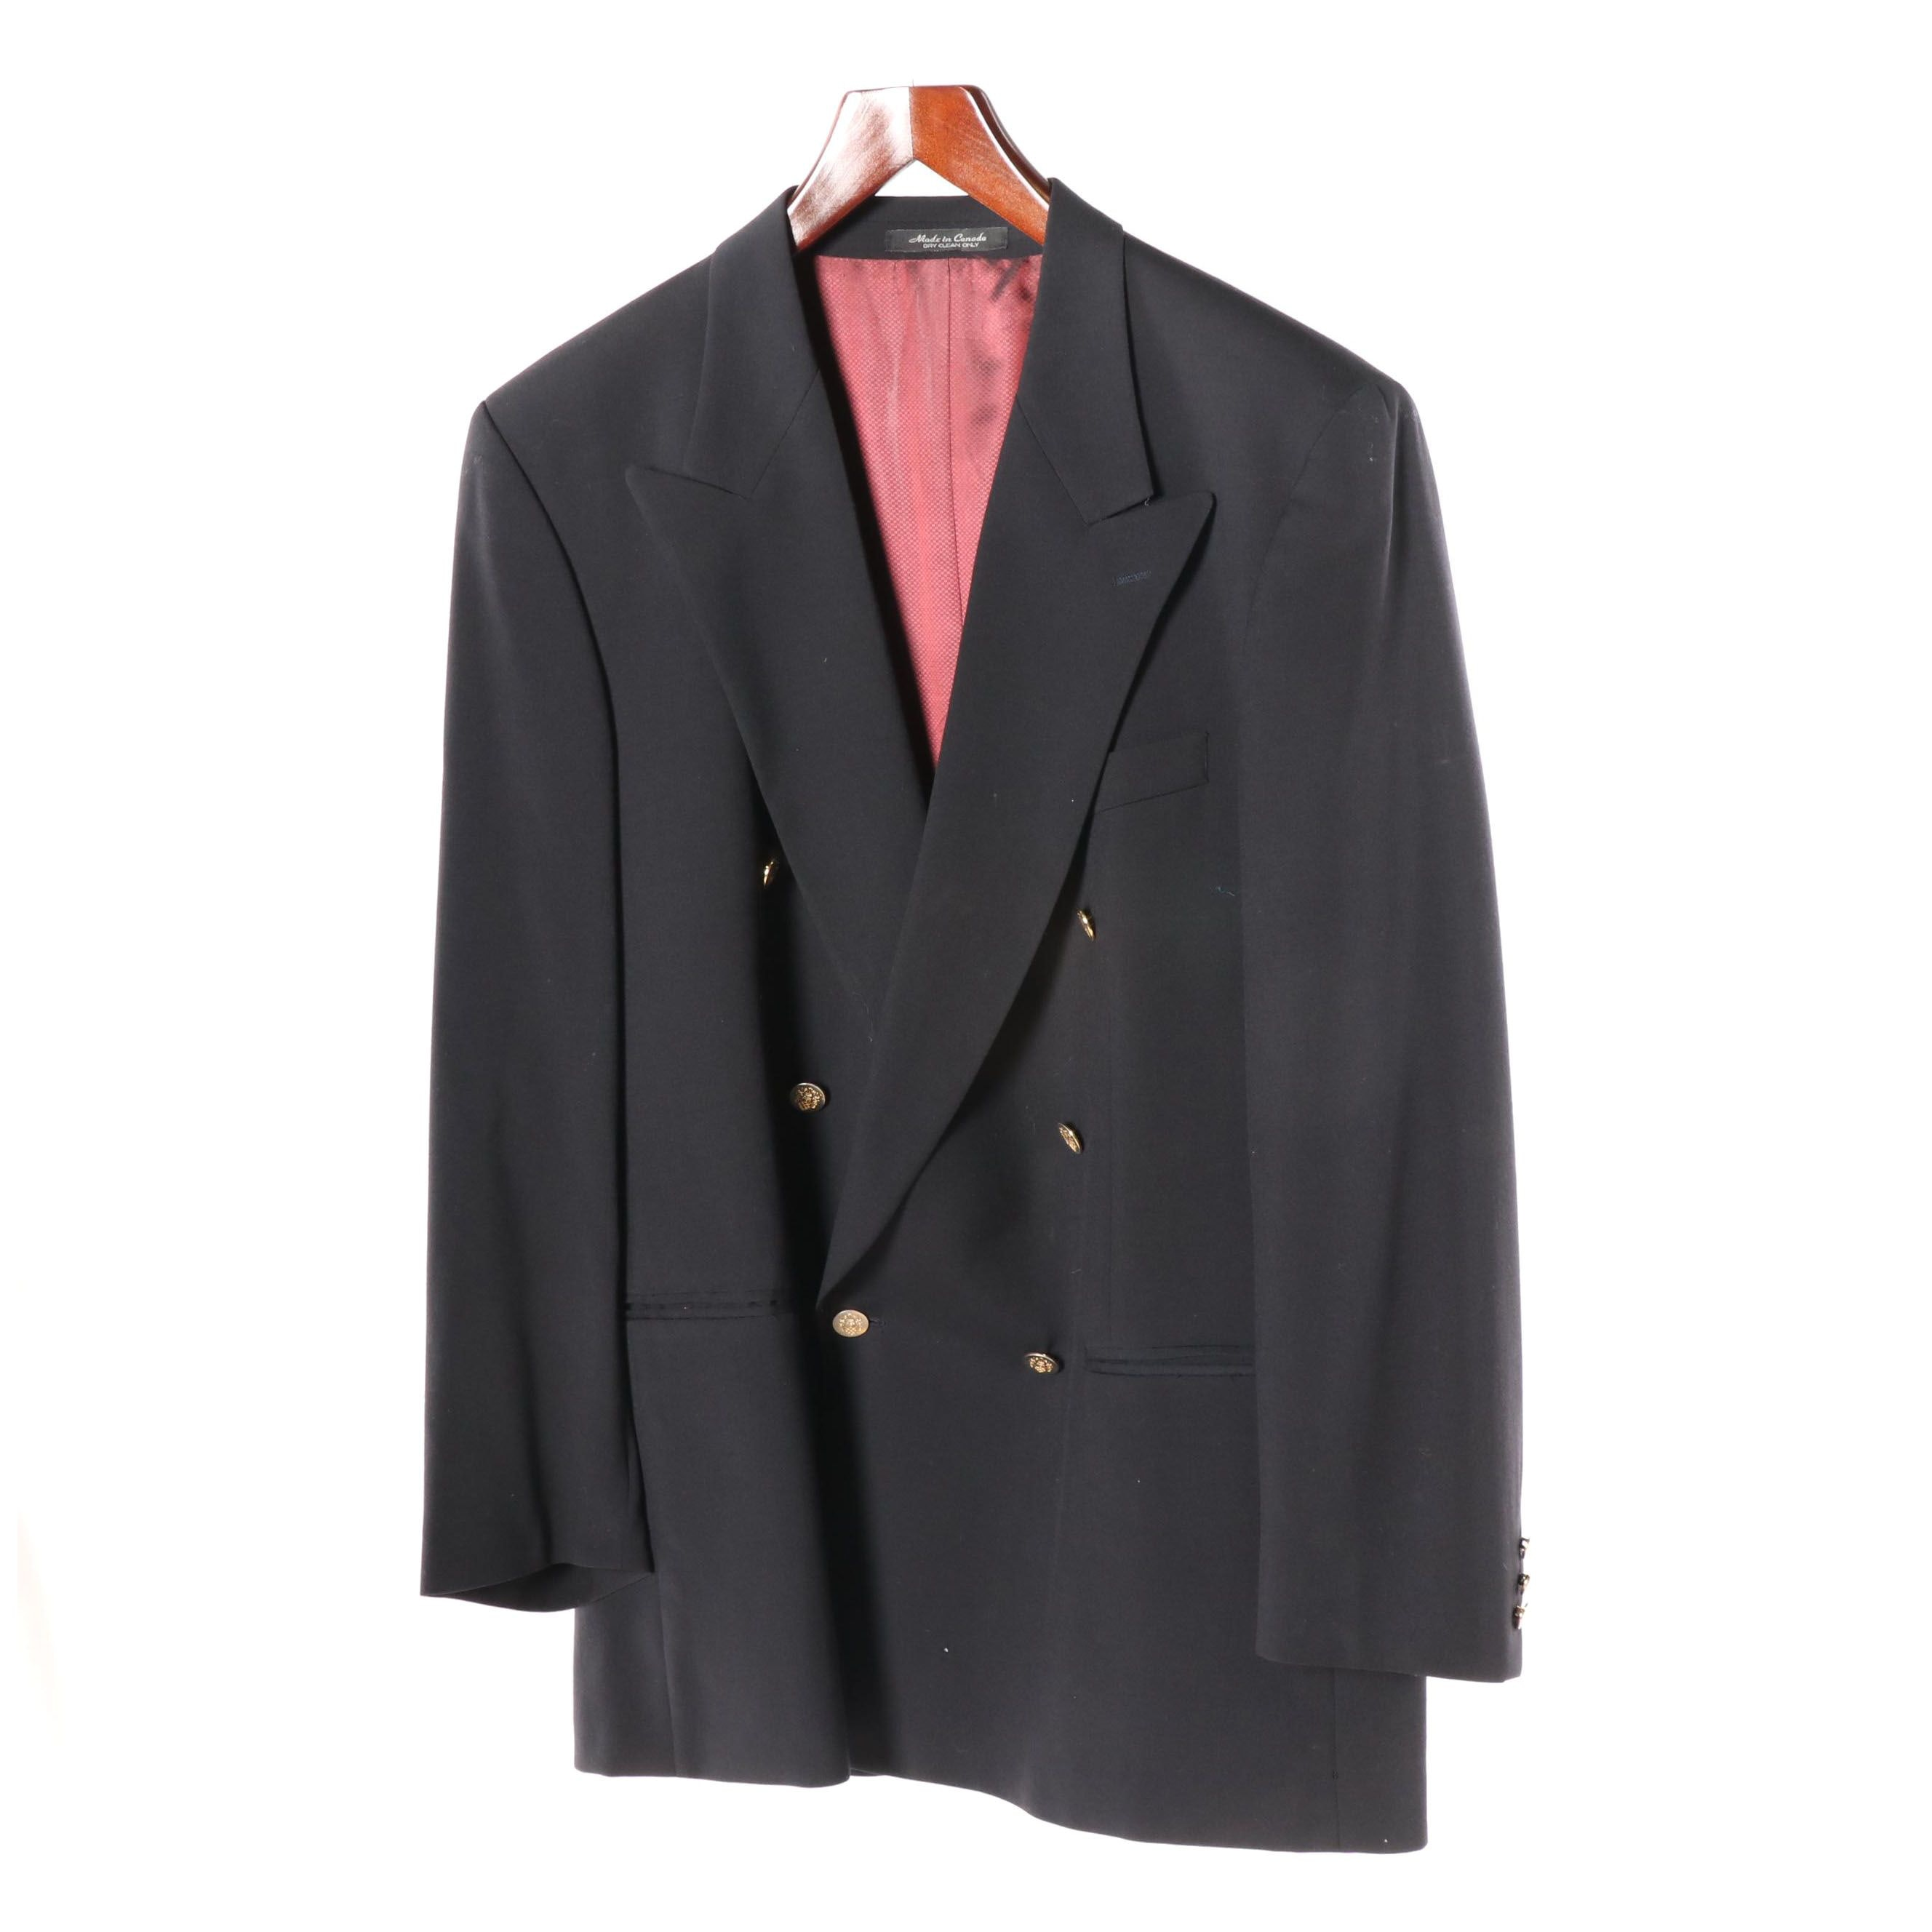 Men's Bachrach Double-Breasted Wool Jacket, Made in Canada